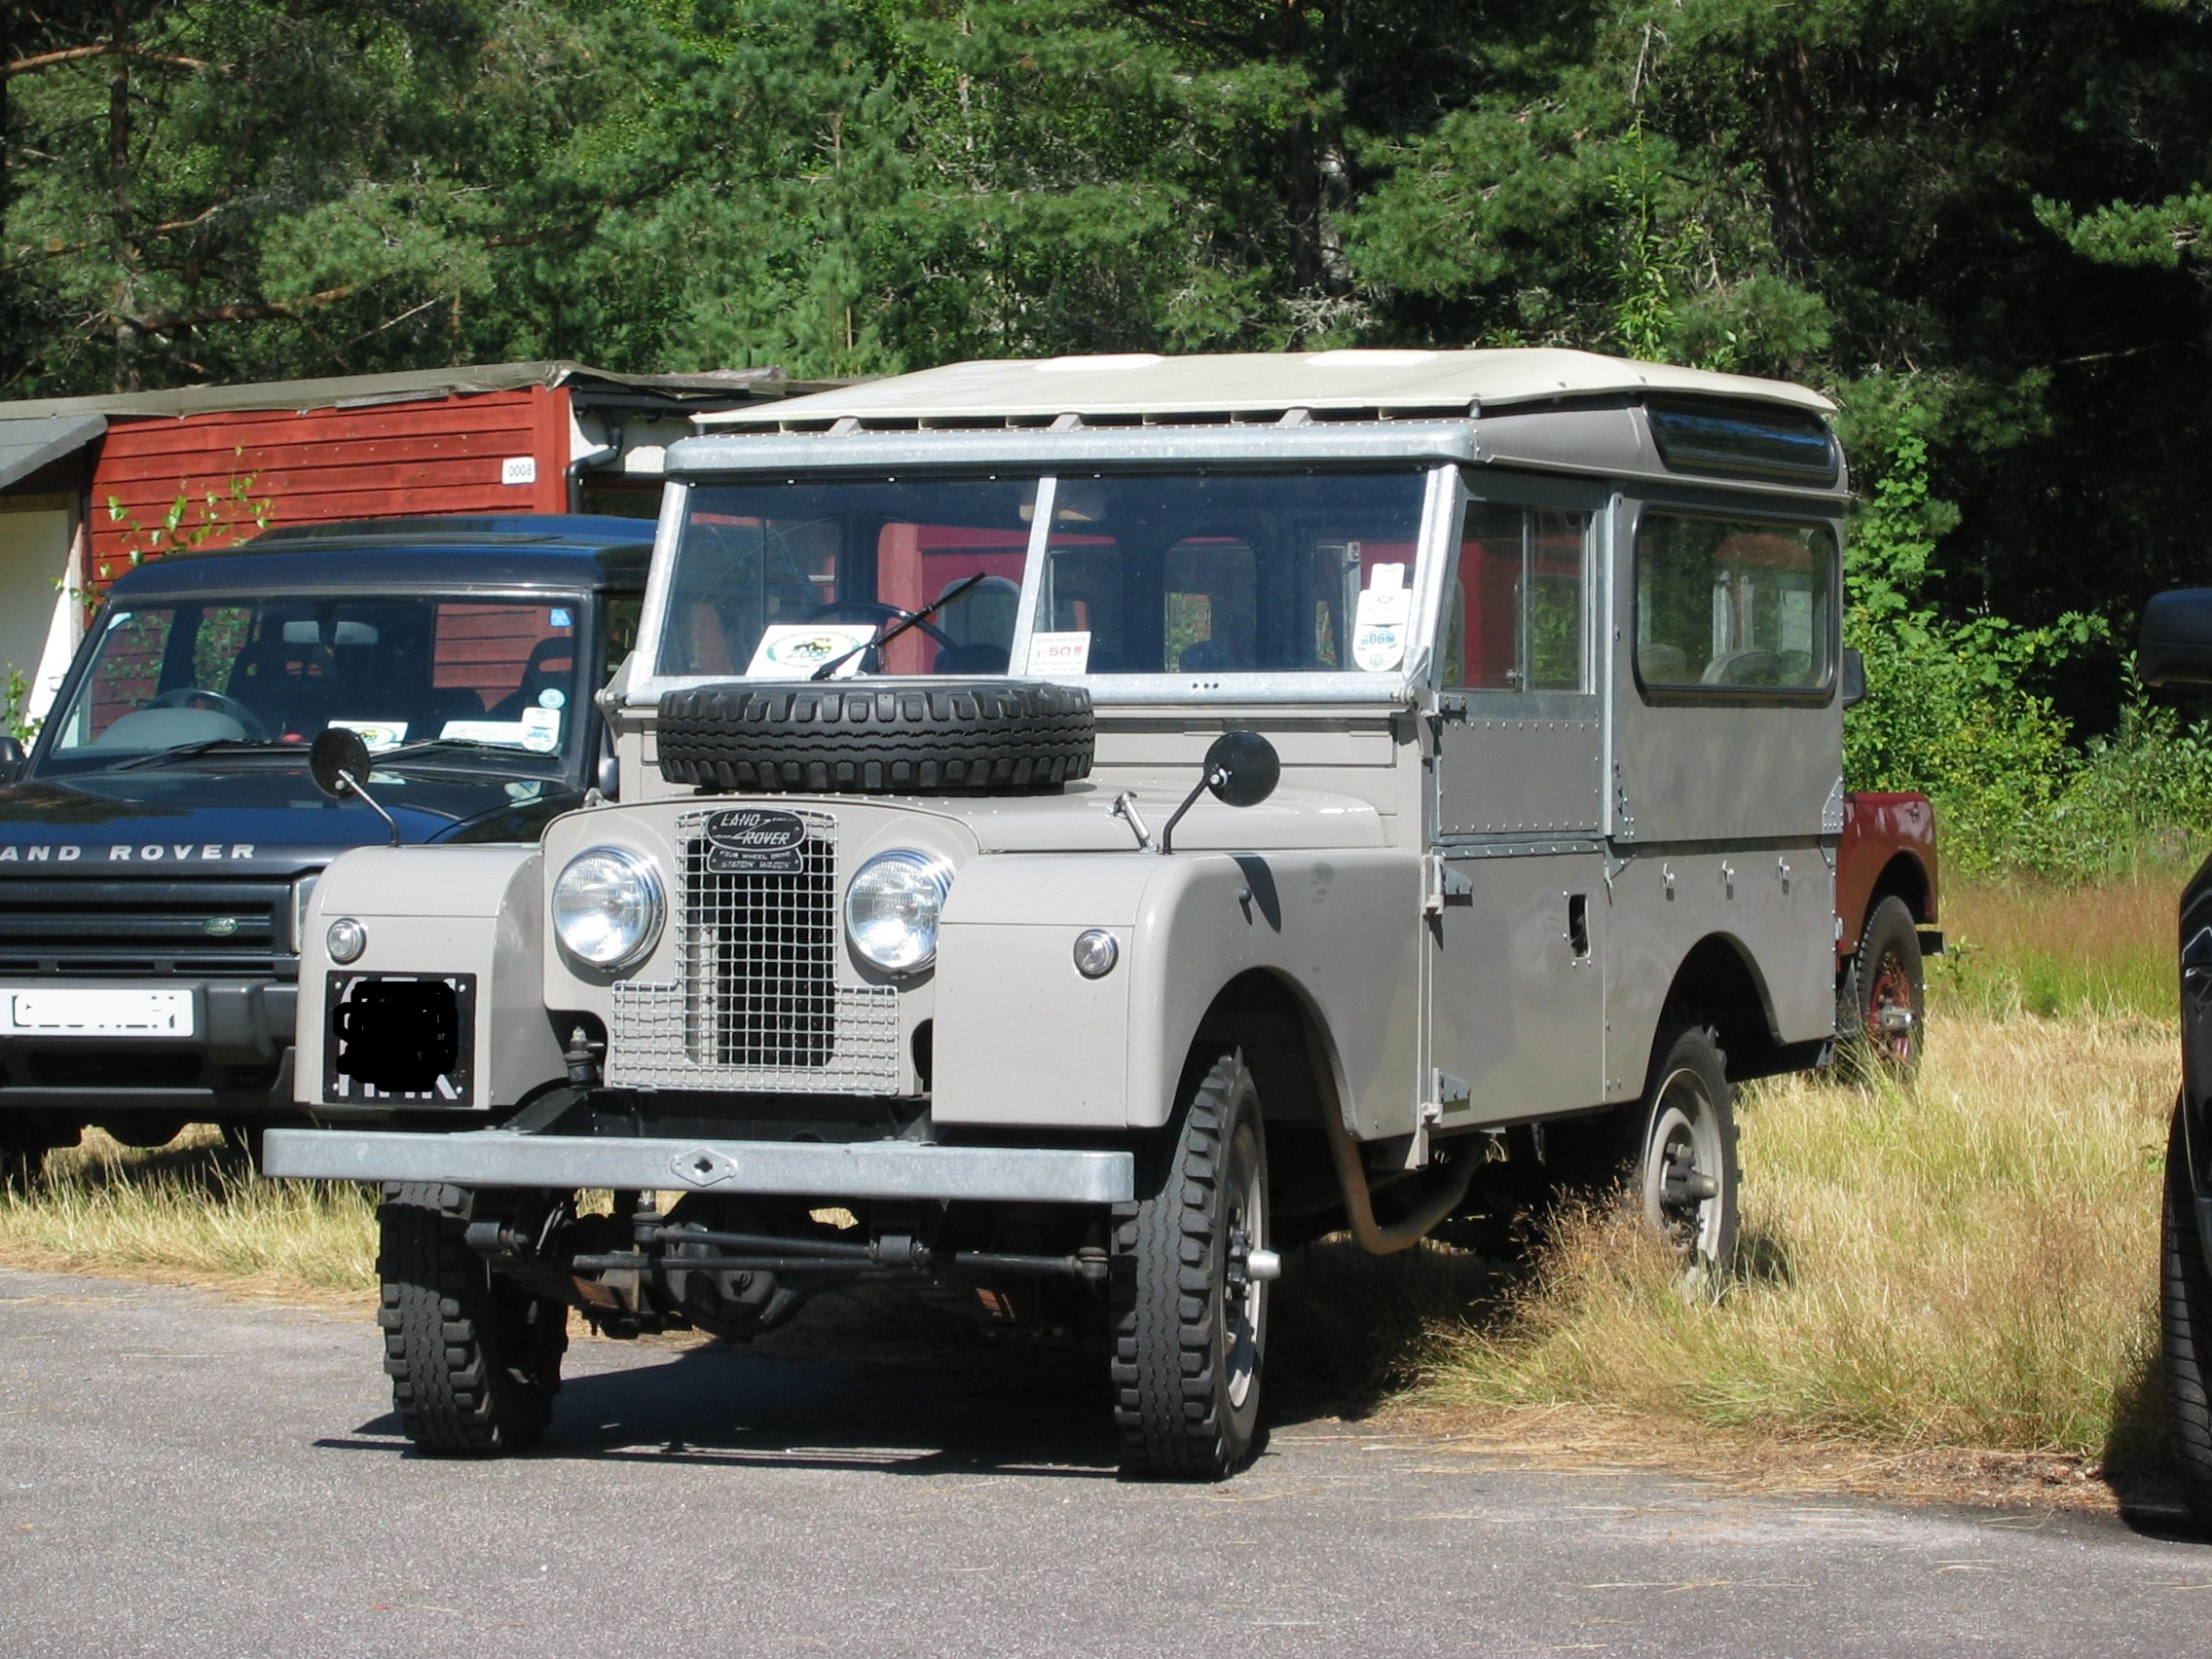 Land-Rover Series image #1